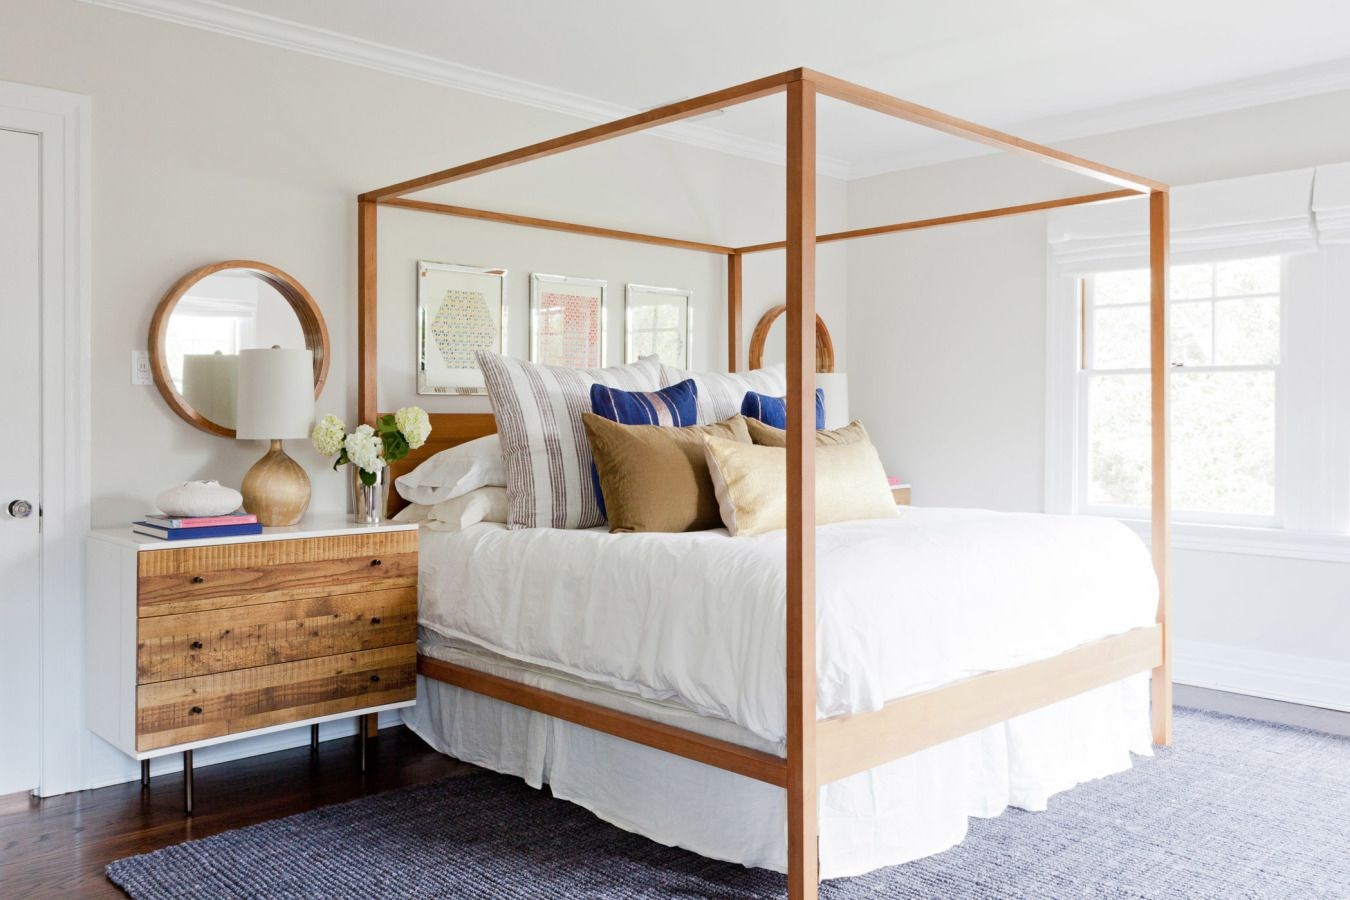 A beachy bedroom with a light brown canopy bed